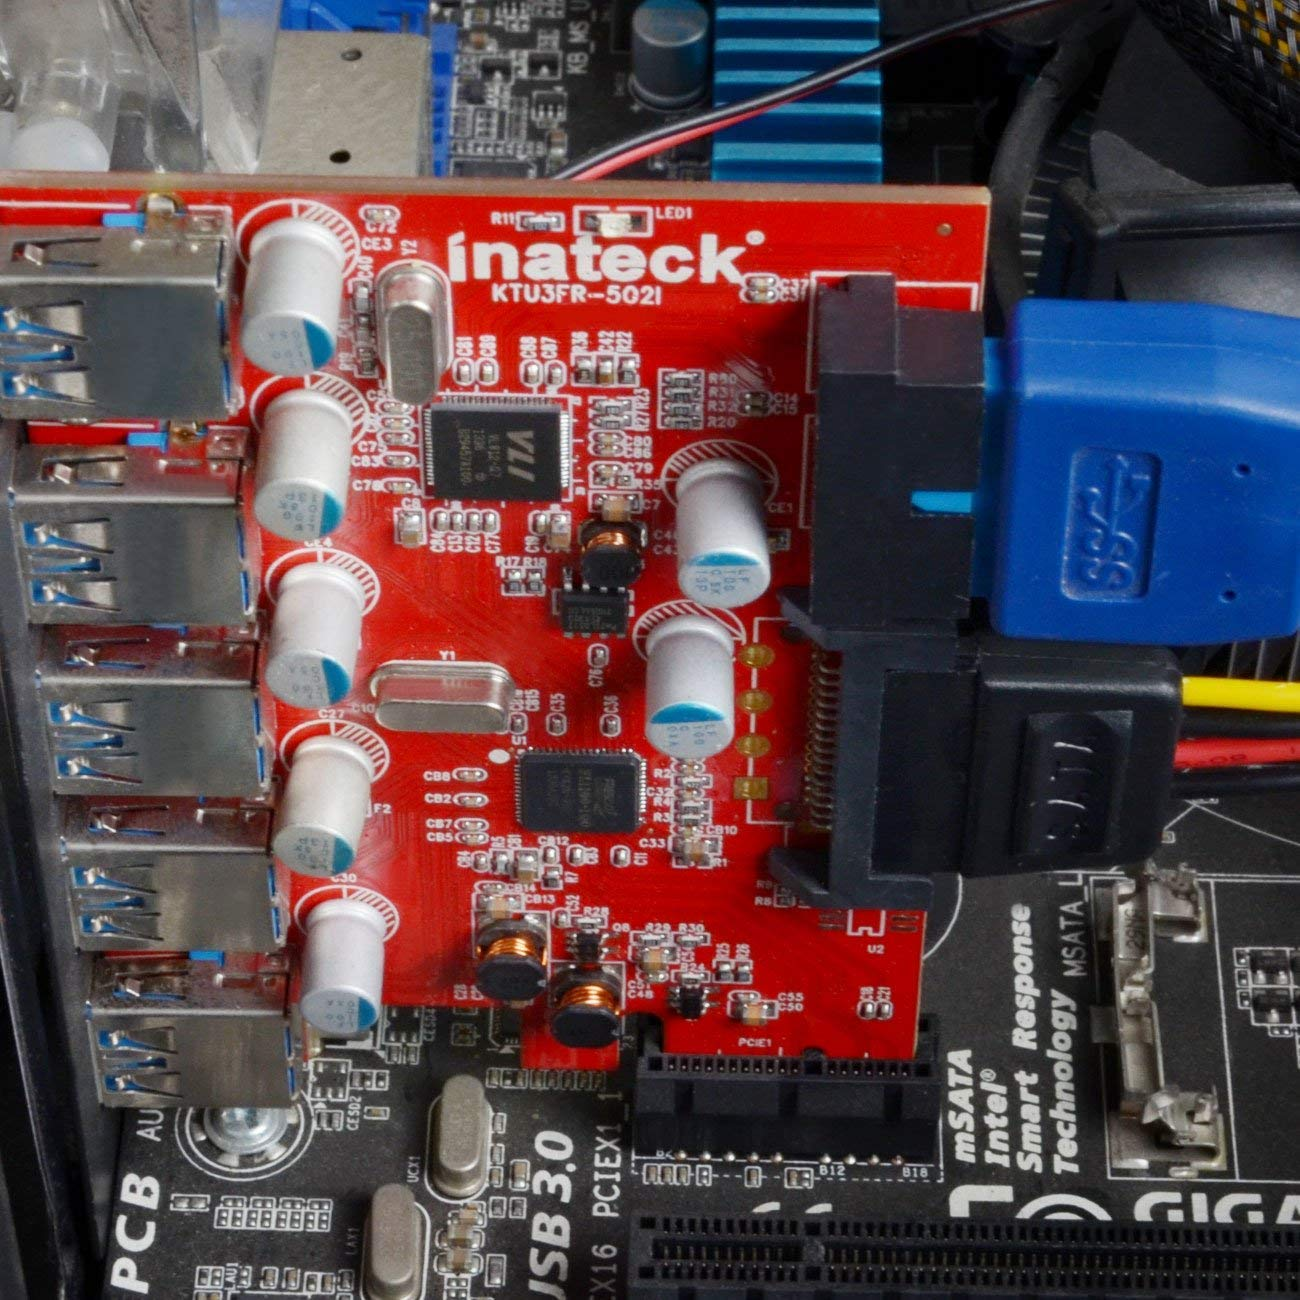 Inateck PCI-E to USB 3.0 (5 Ports) PCI Express Card and 15-Pin Power Connector, Red (KT5001) by Inateck (Image #5)